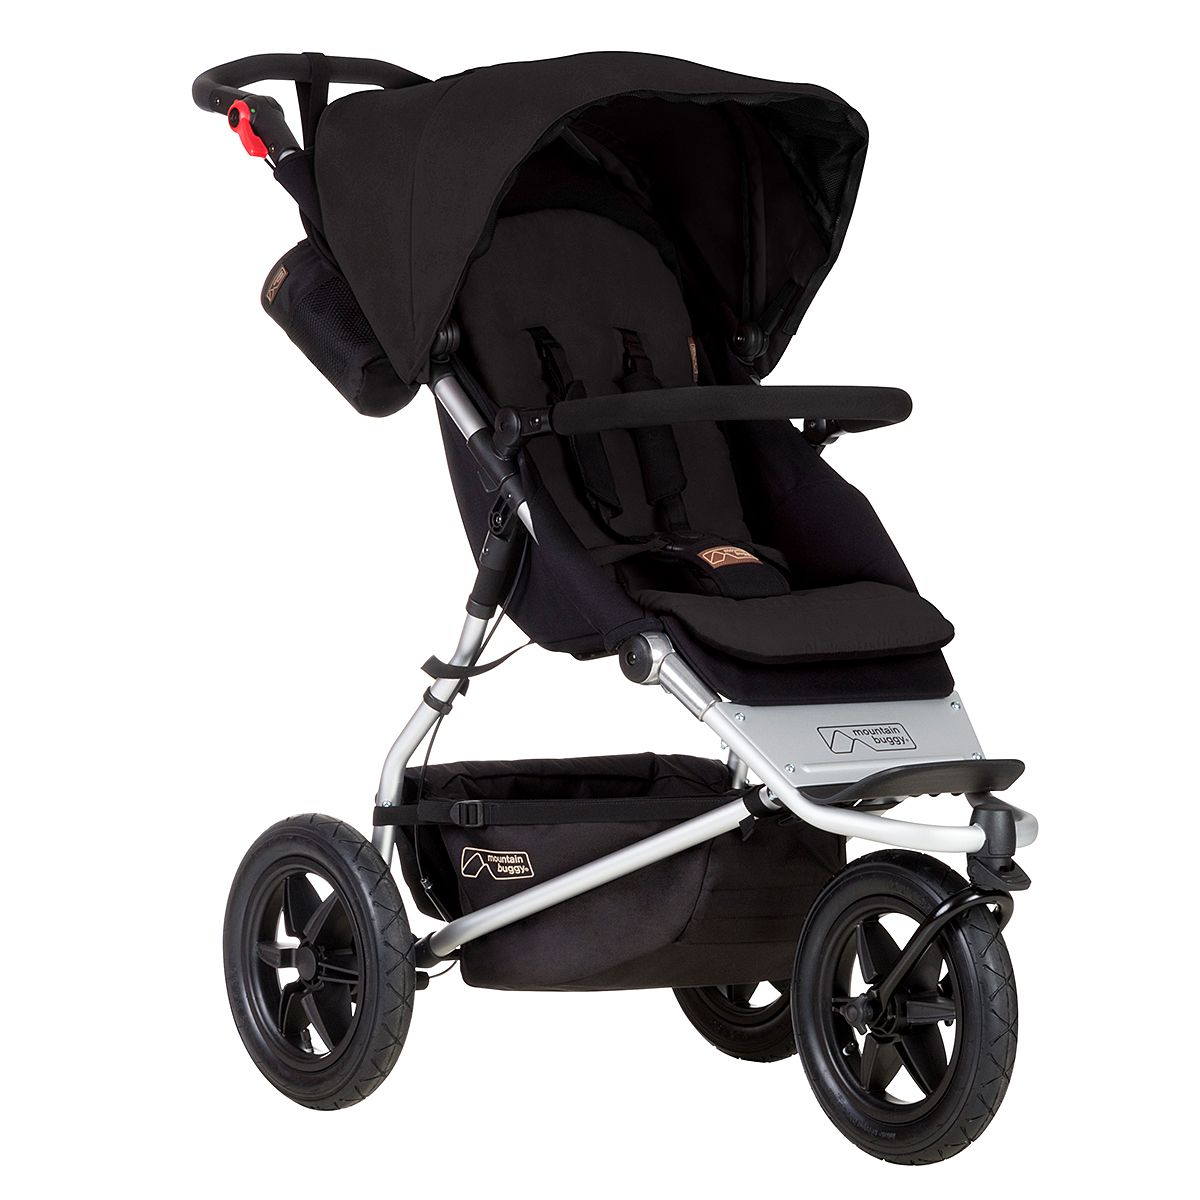 Mountain Buggy Urban Jungle Mountain buggy, Prams, Baby